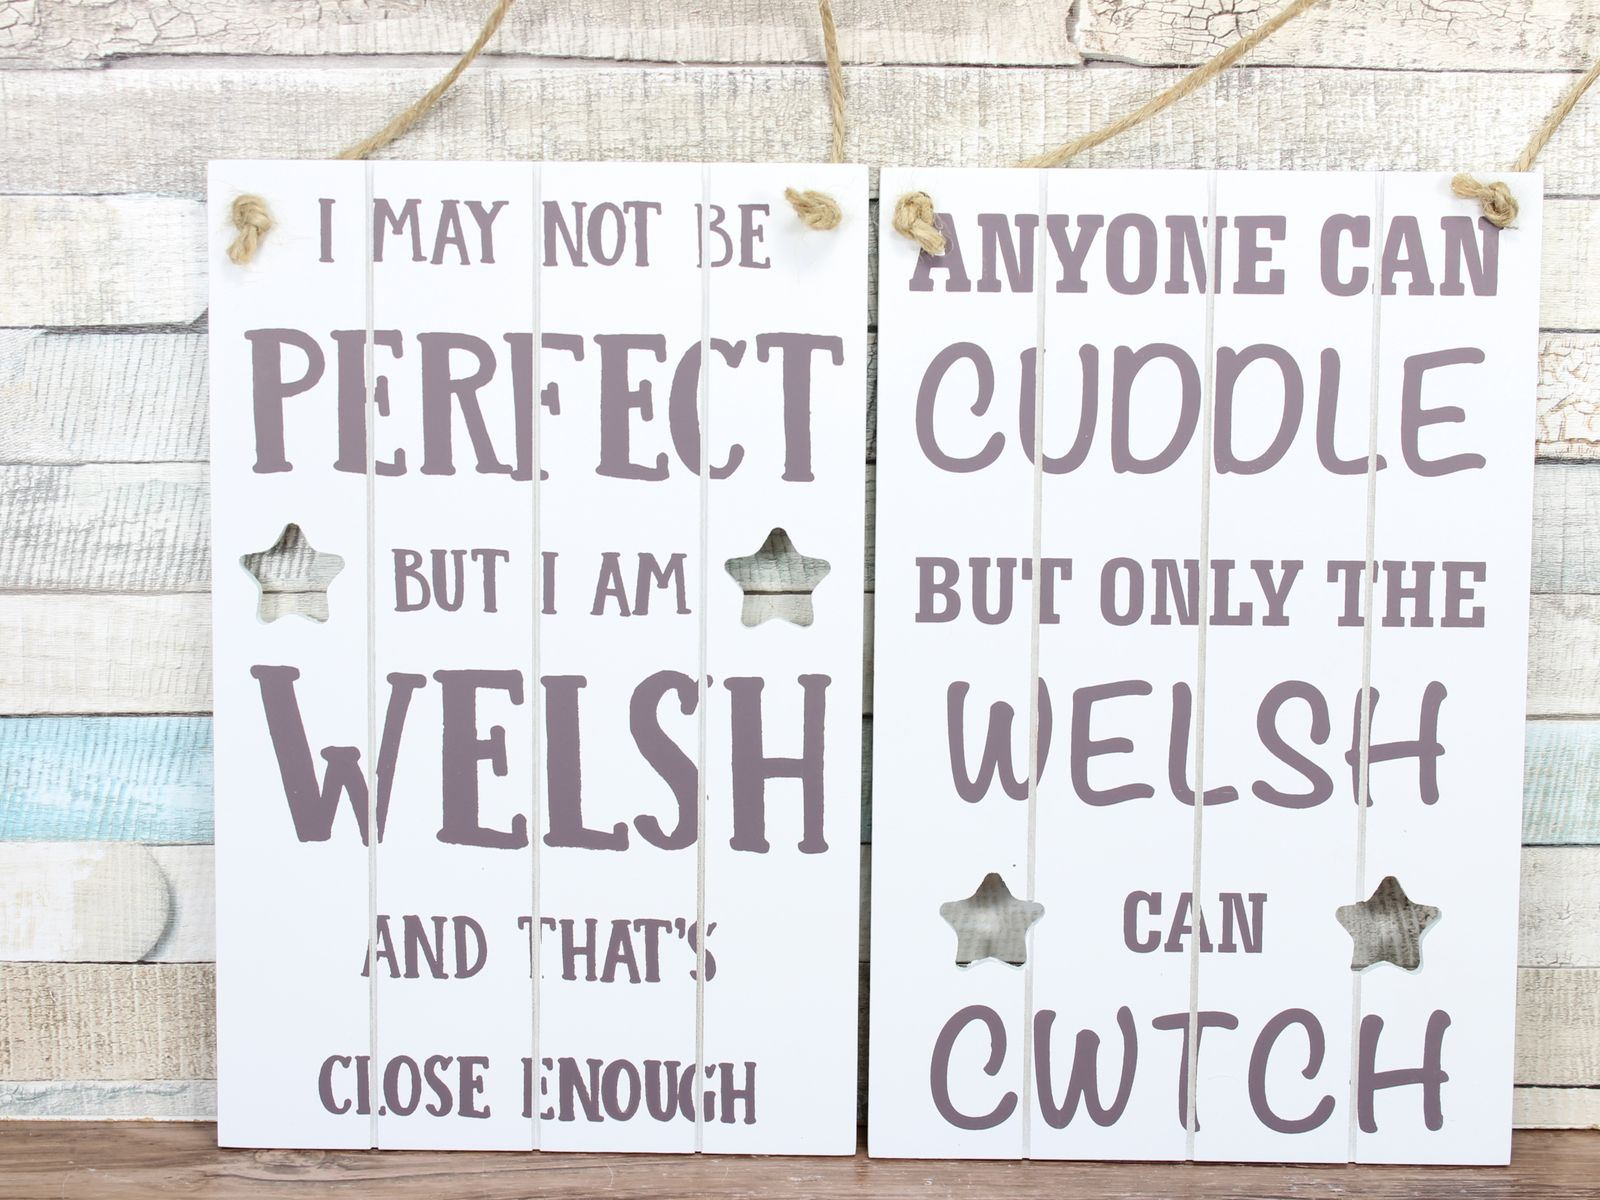 CWTCH Vintage Shabby Chic Wooden Sign Old Look Wales Welsh